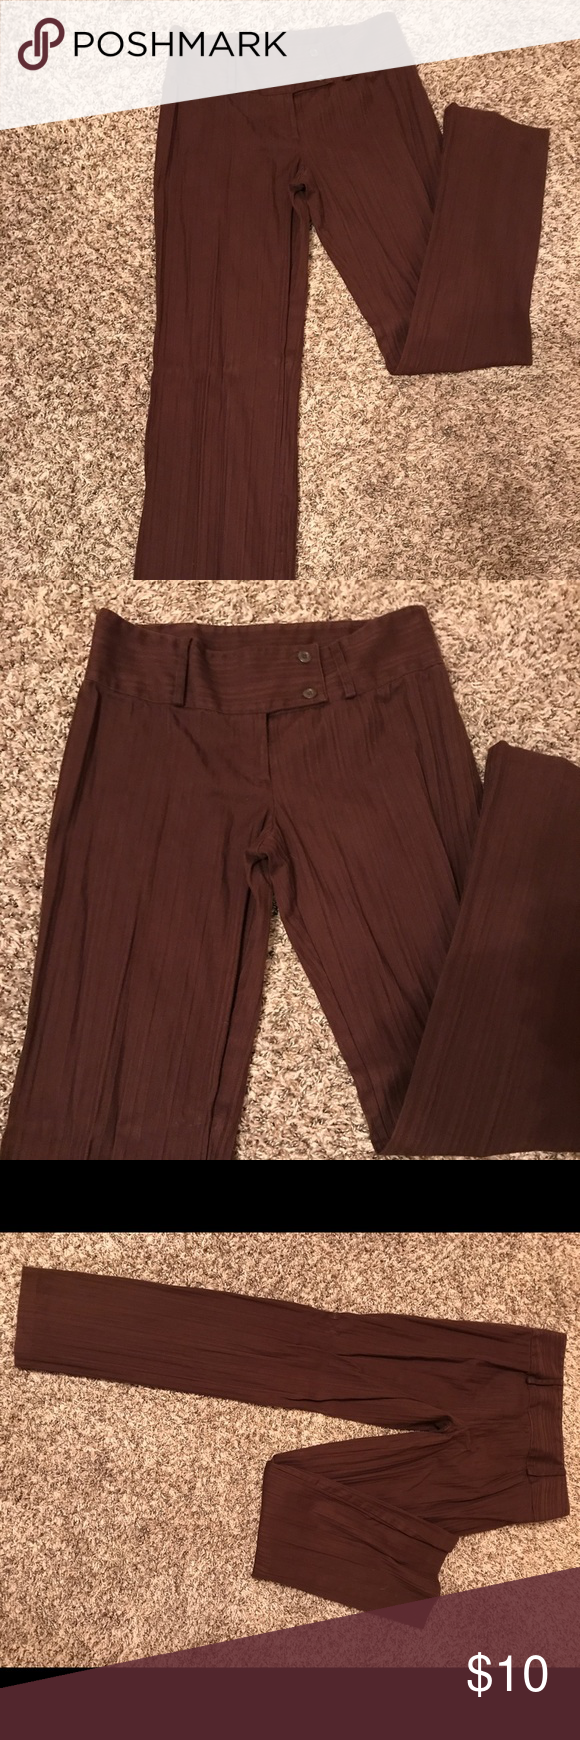 Dark brown dress pants juniors size about inches long pants